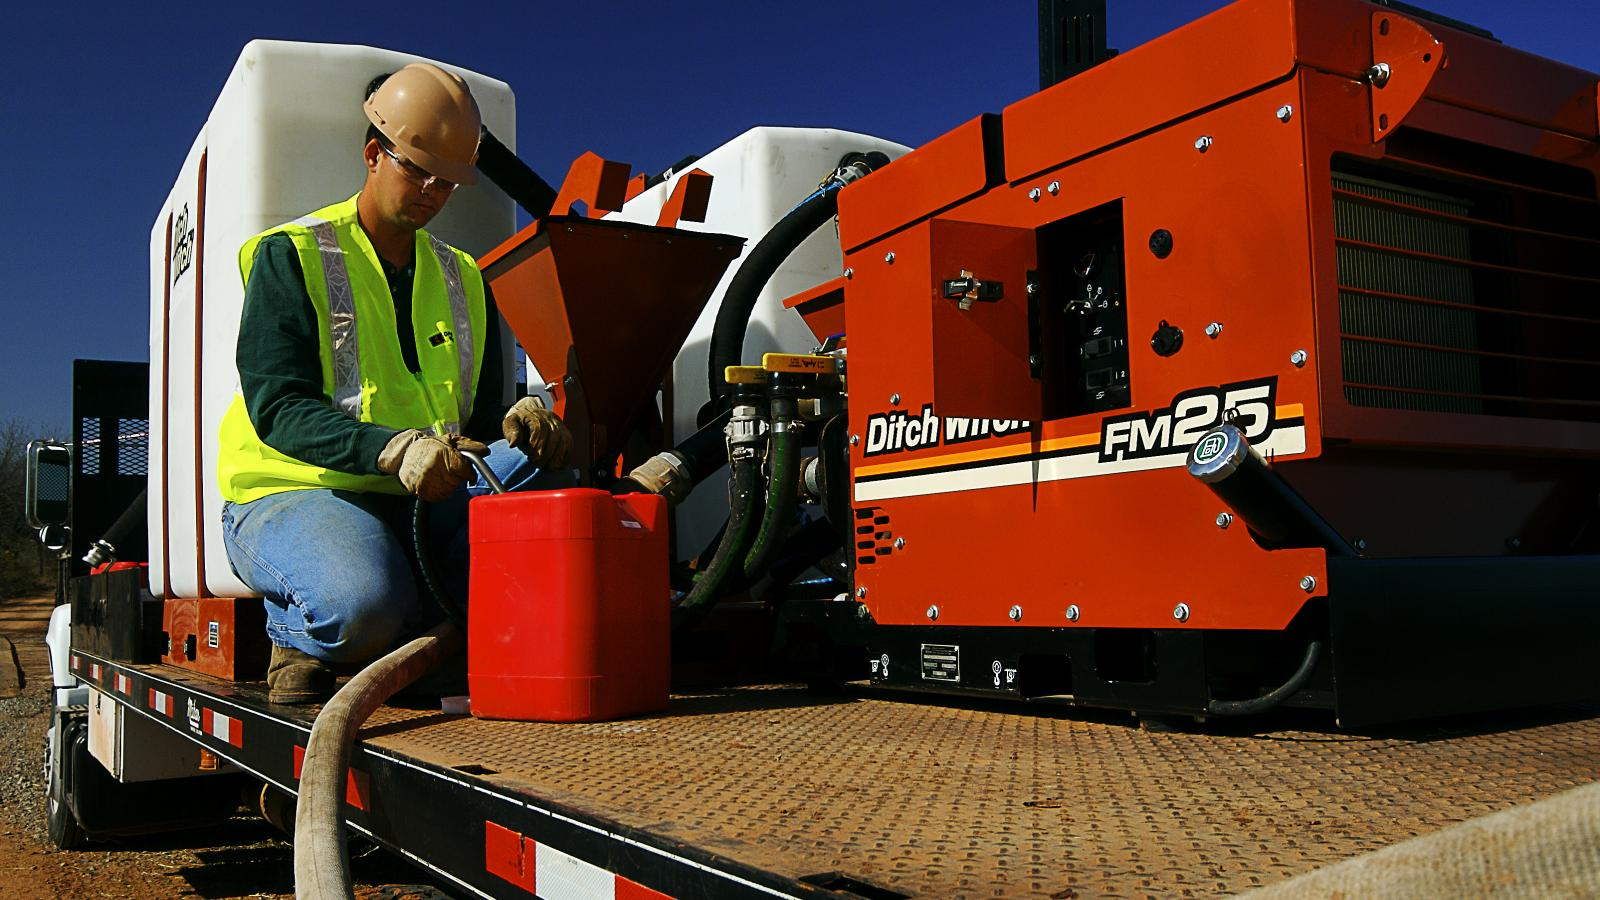 Ditch Witch FM25 Fluid Management